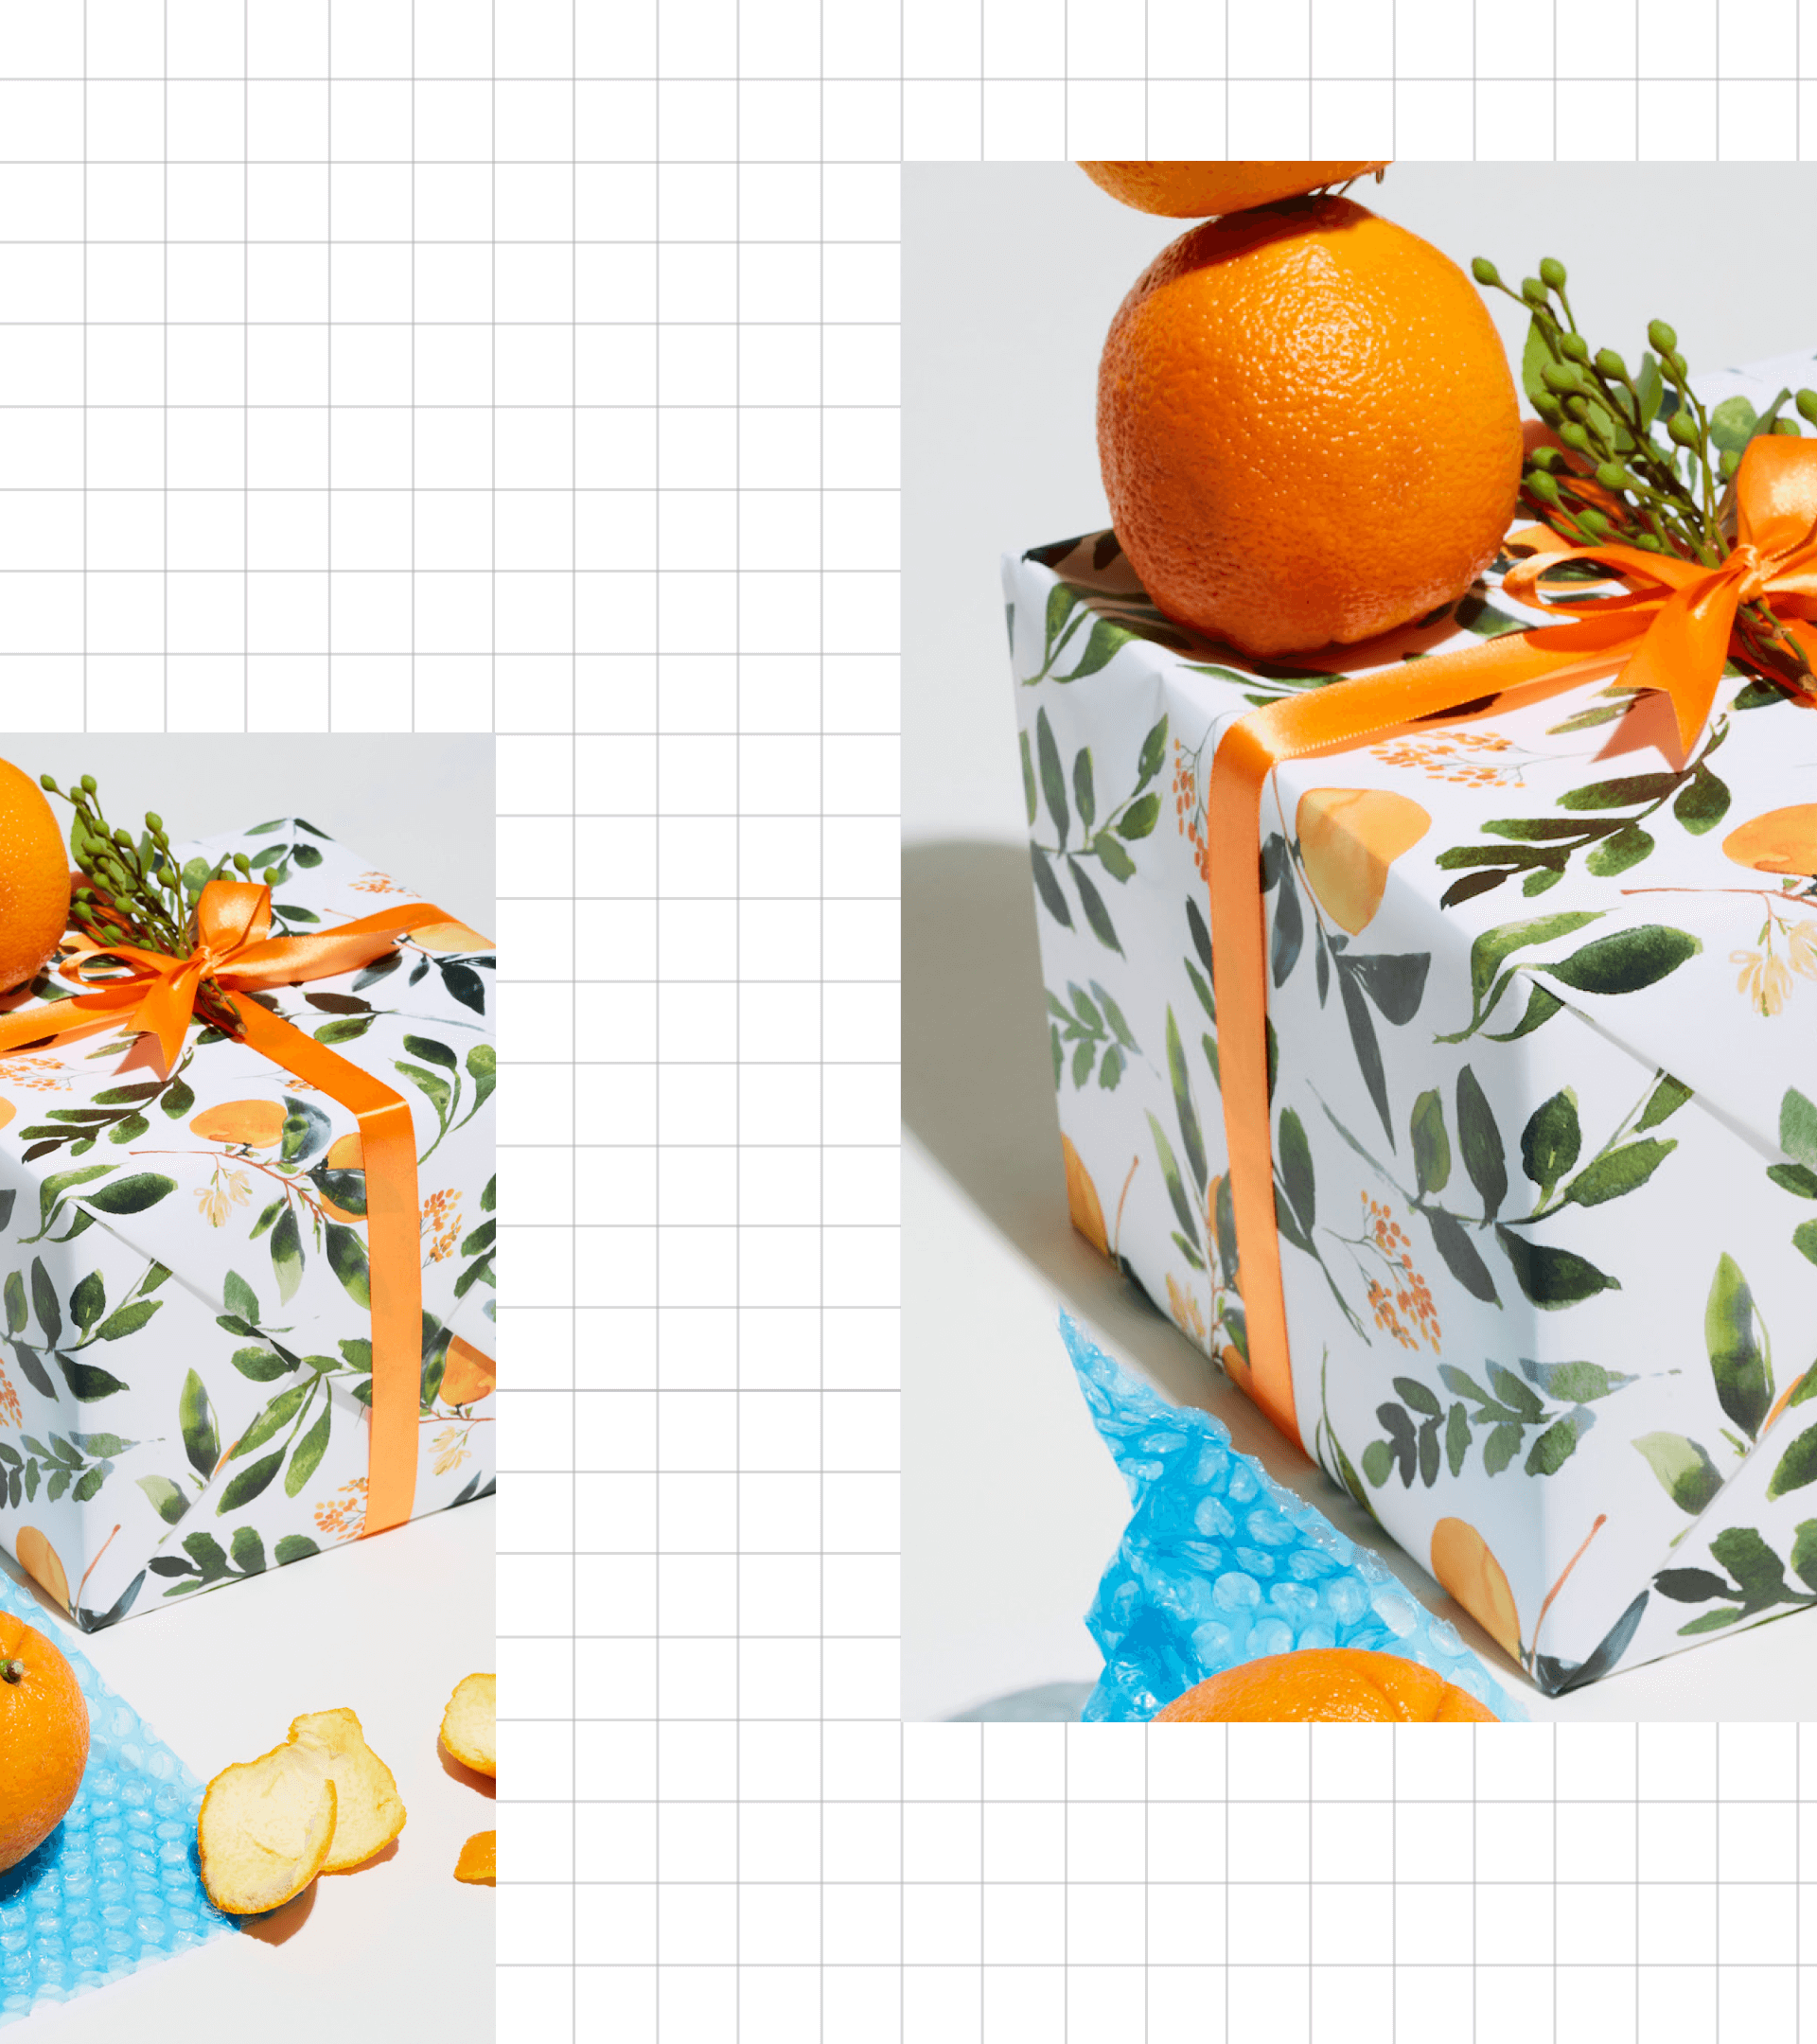 Photos of wrapped presents on a grid